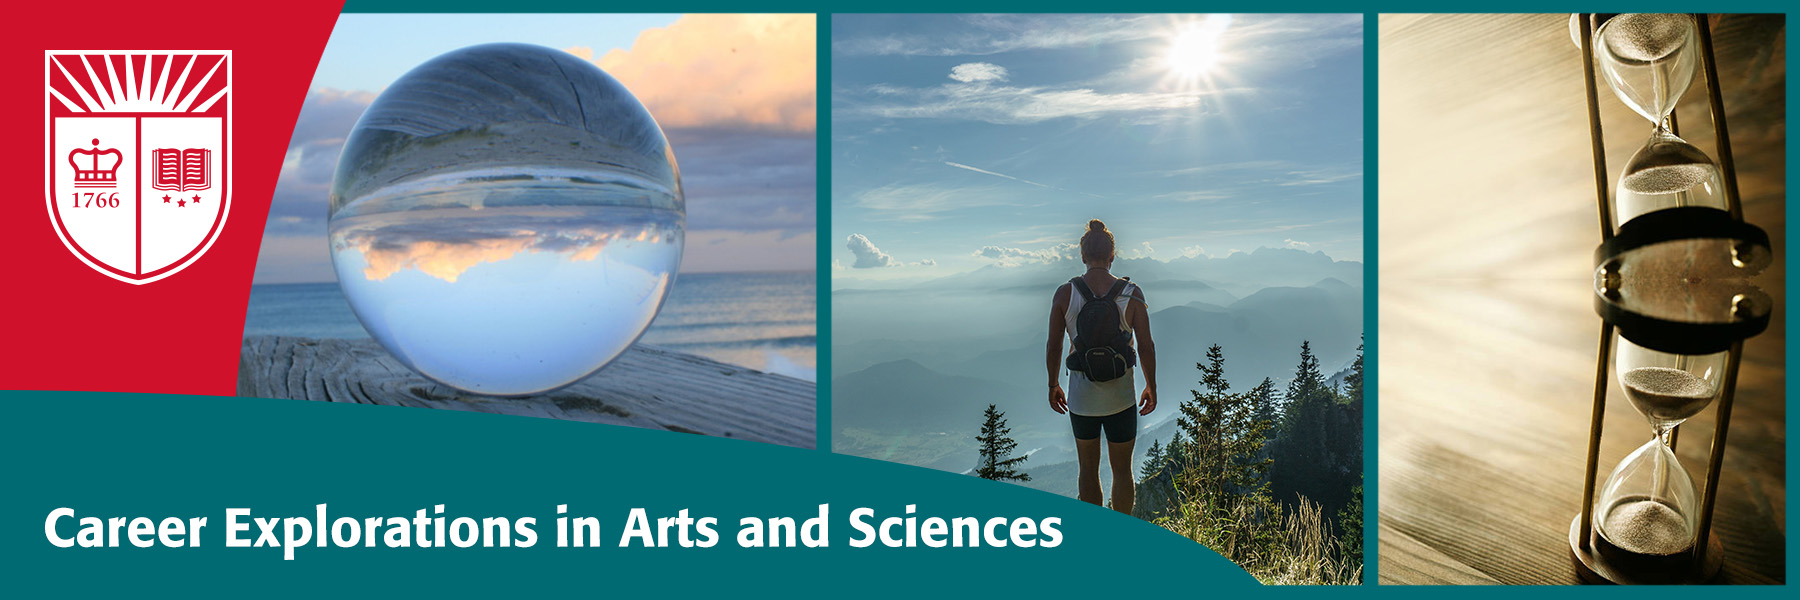 Career Explorations in the Arts and Sciences